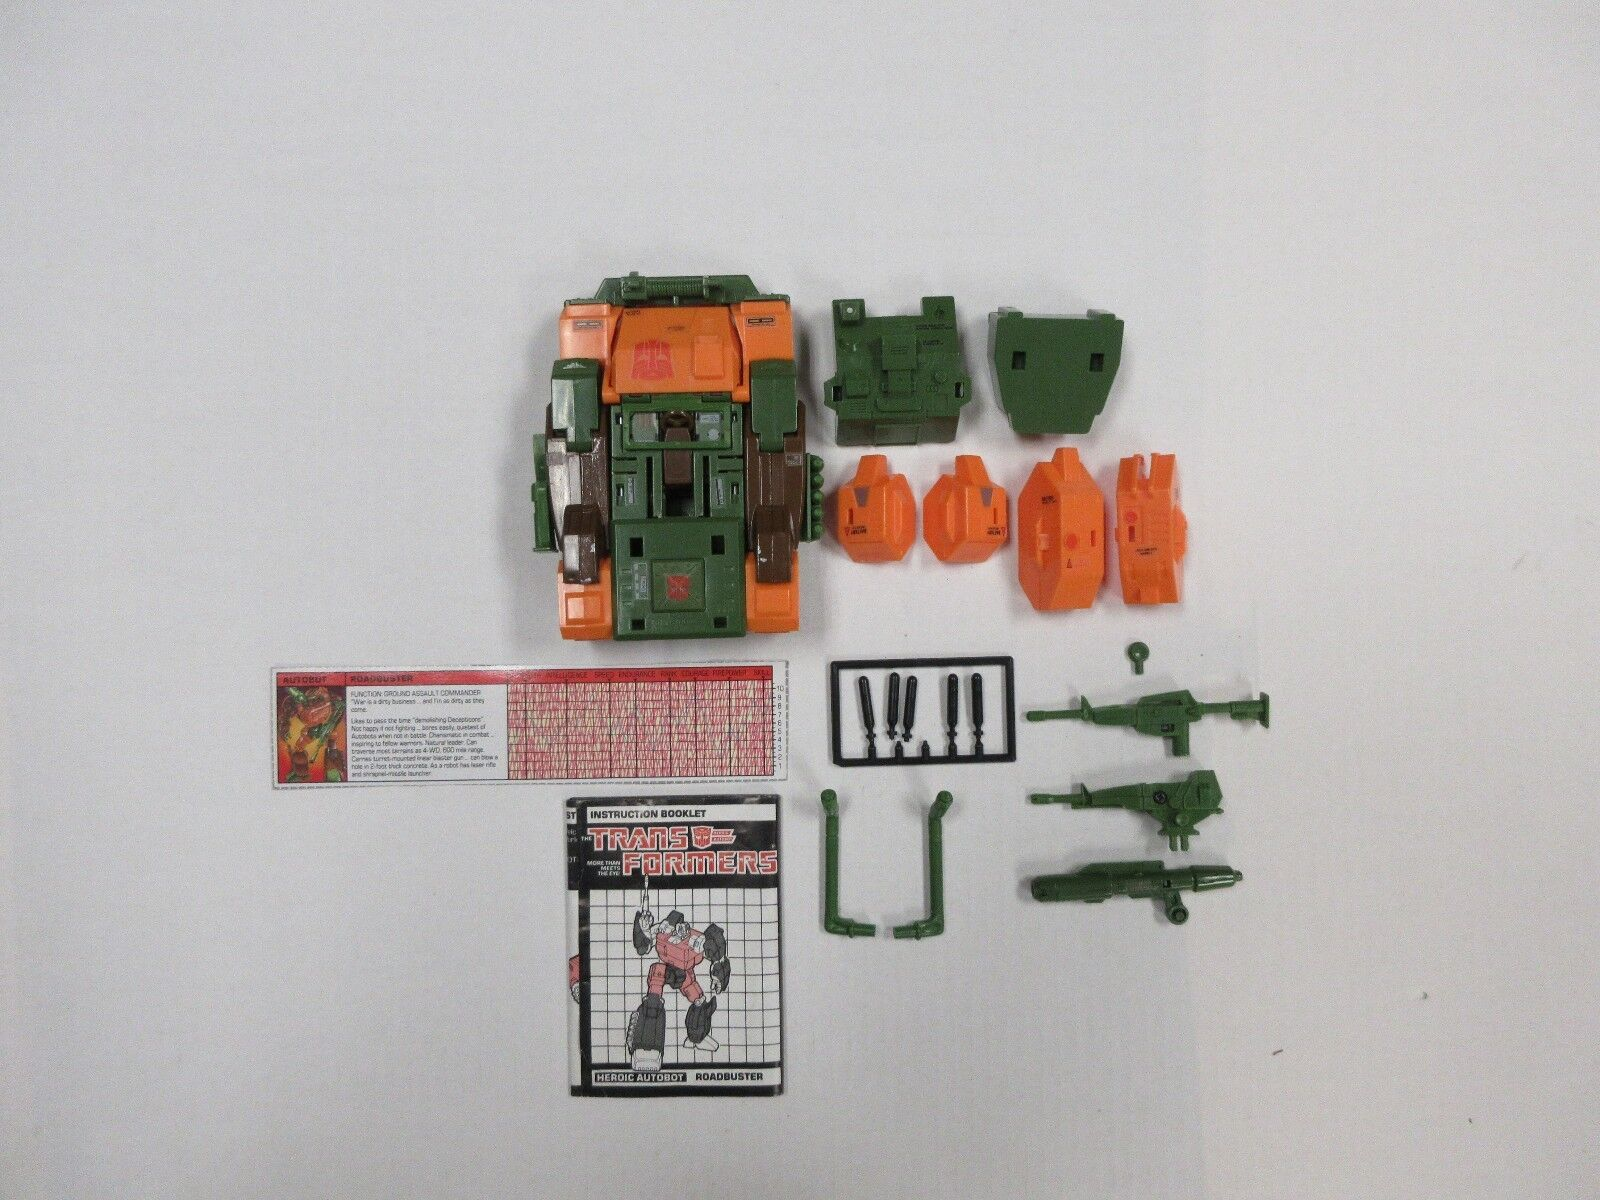 1985 G1 TRANSFORMERS ROADBUSTER NEAR COMPLETE COMPLETE COMPLETE ROBOT W  TECH SPECS INSTRUCTIONS 33e2b8